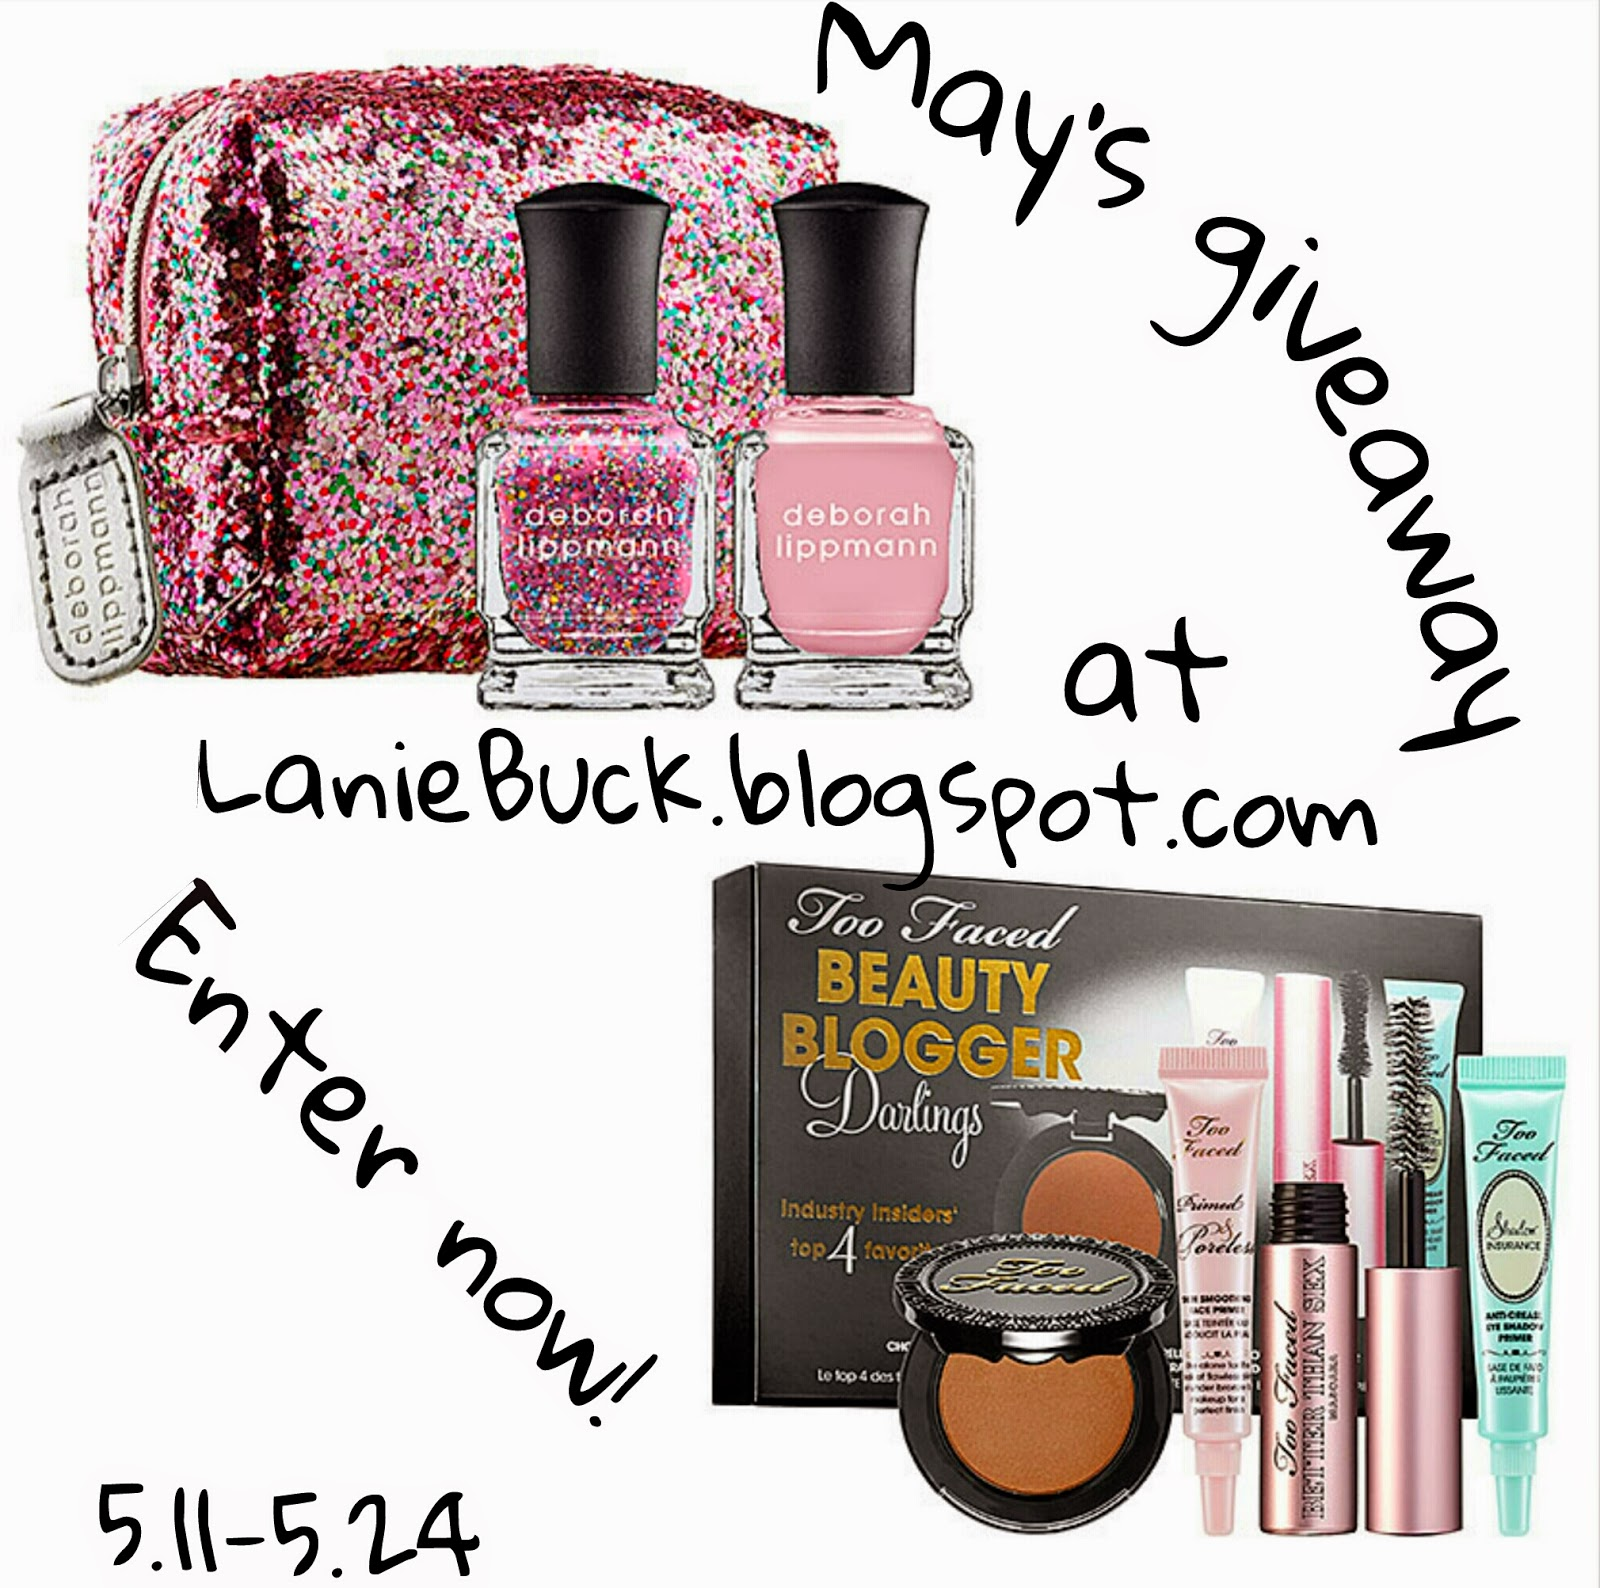 http://laniebuck.blogspot.com/2014/05/mays-giveaway-too-faced-beauty-blogger.html